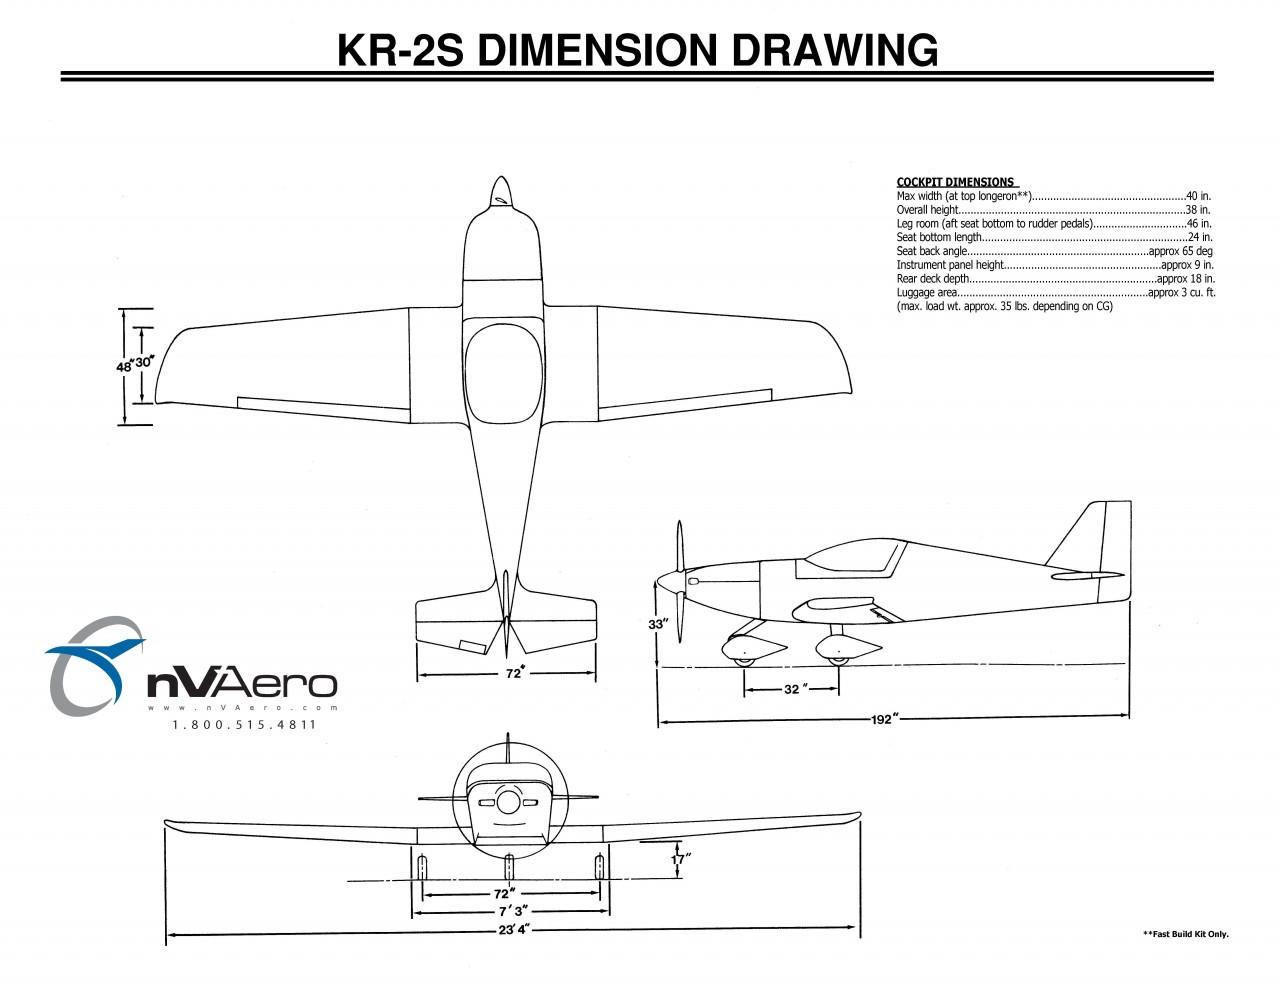 hight resolution of three view drawing of kr 2s and dimensions